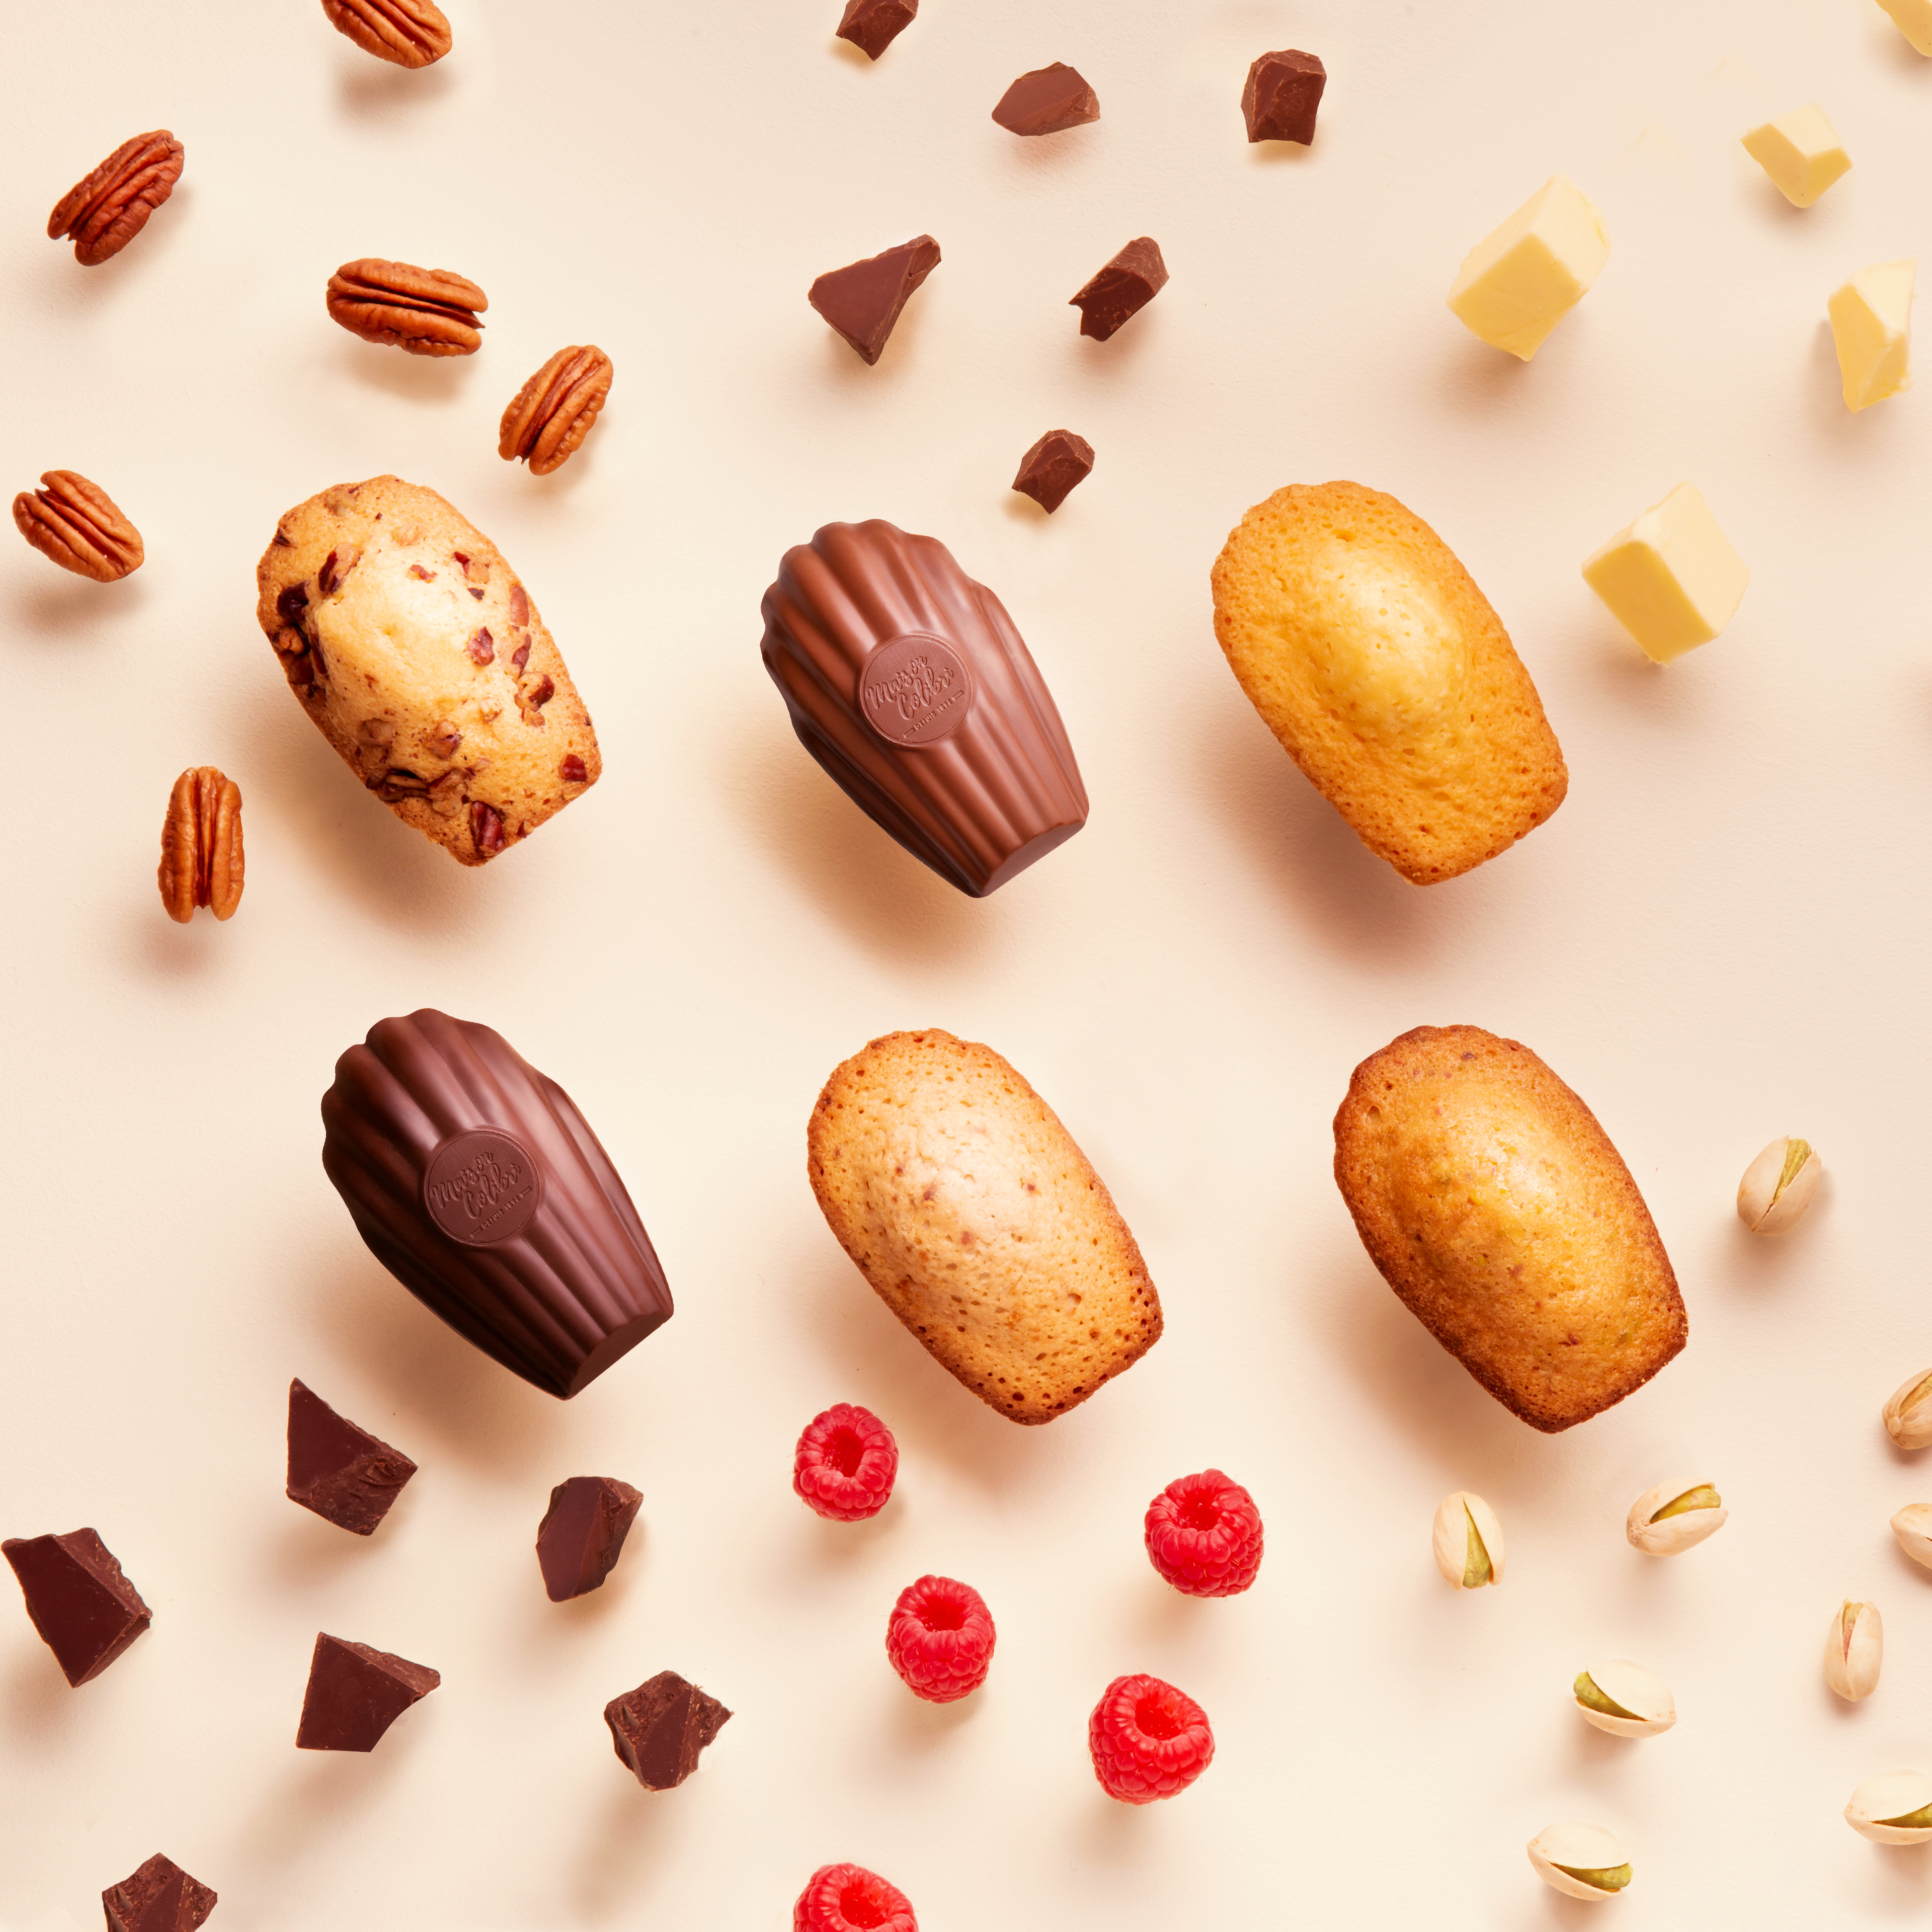 Maison Colibri Les Madeleines Personnalisables Made In France